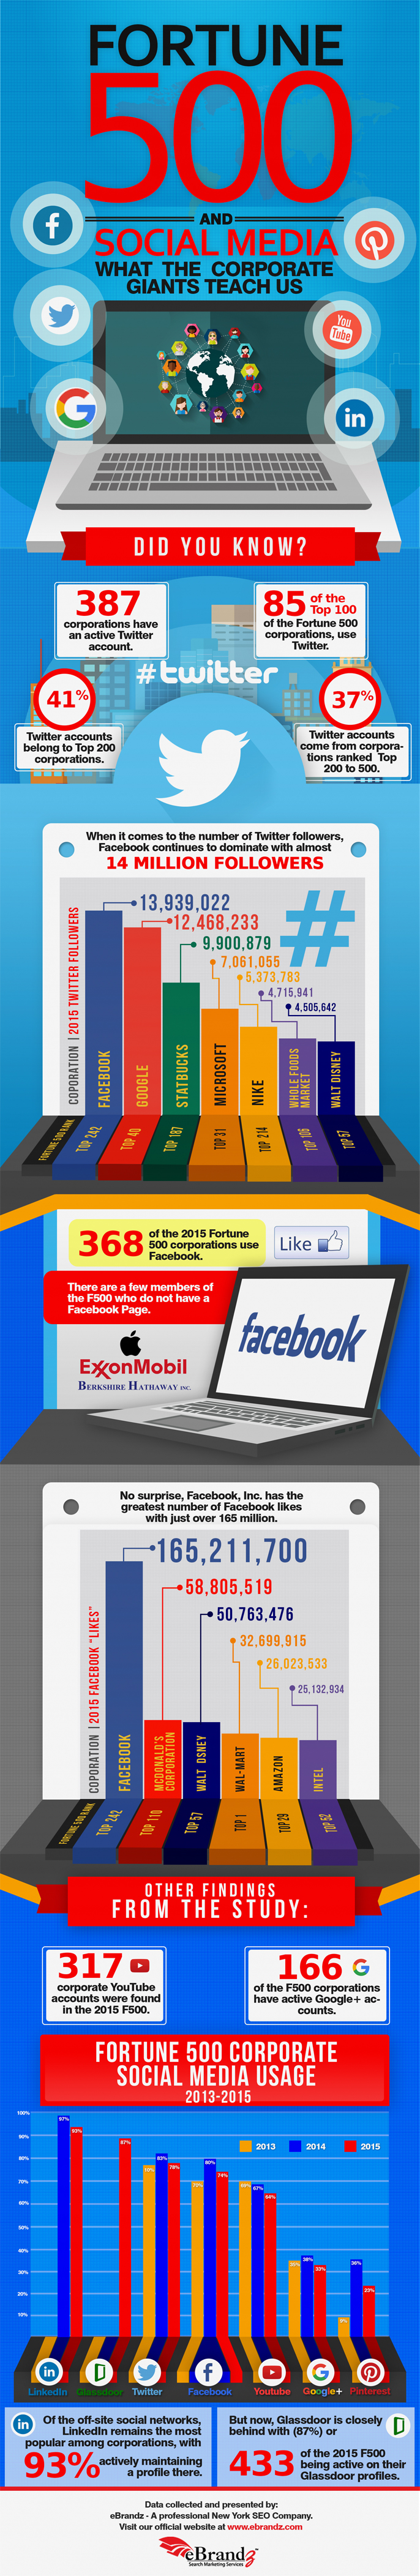 fortune-500-social-media-infographic